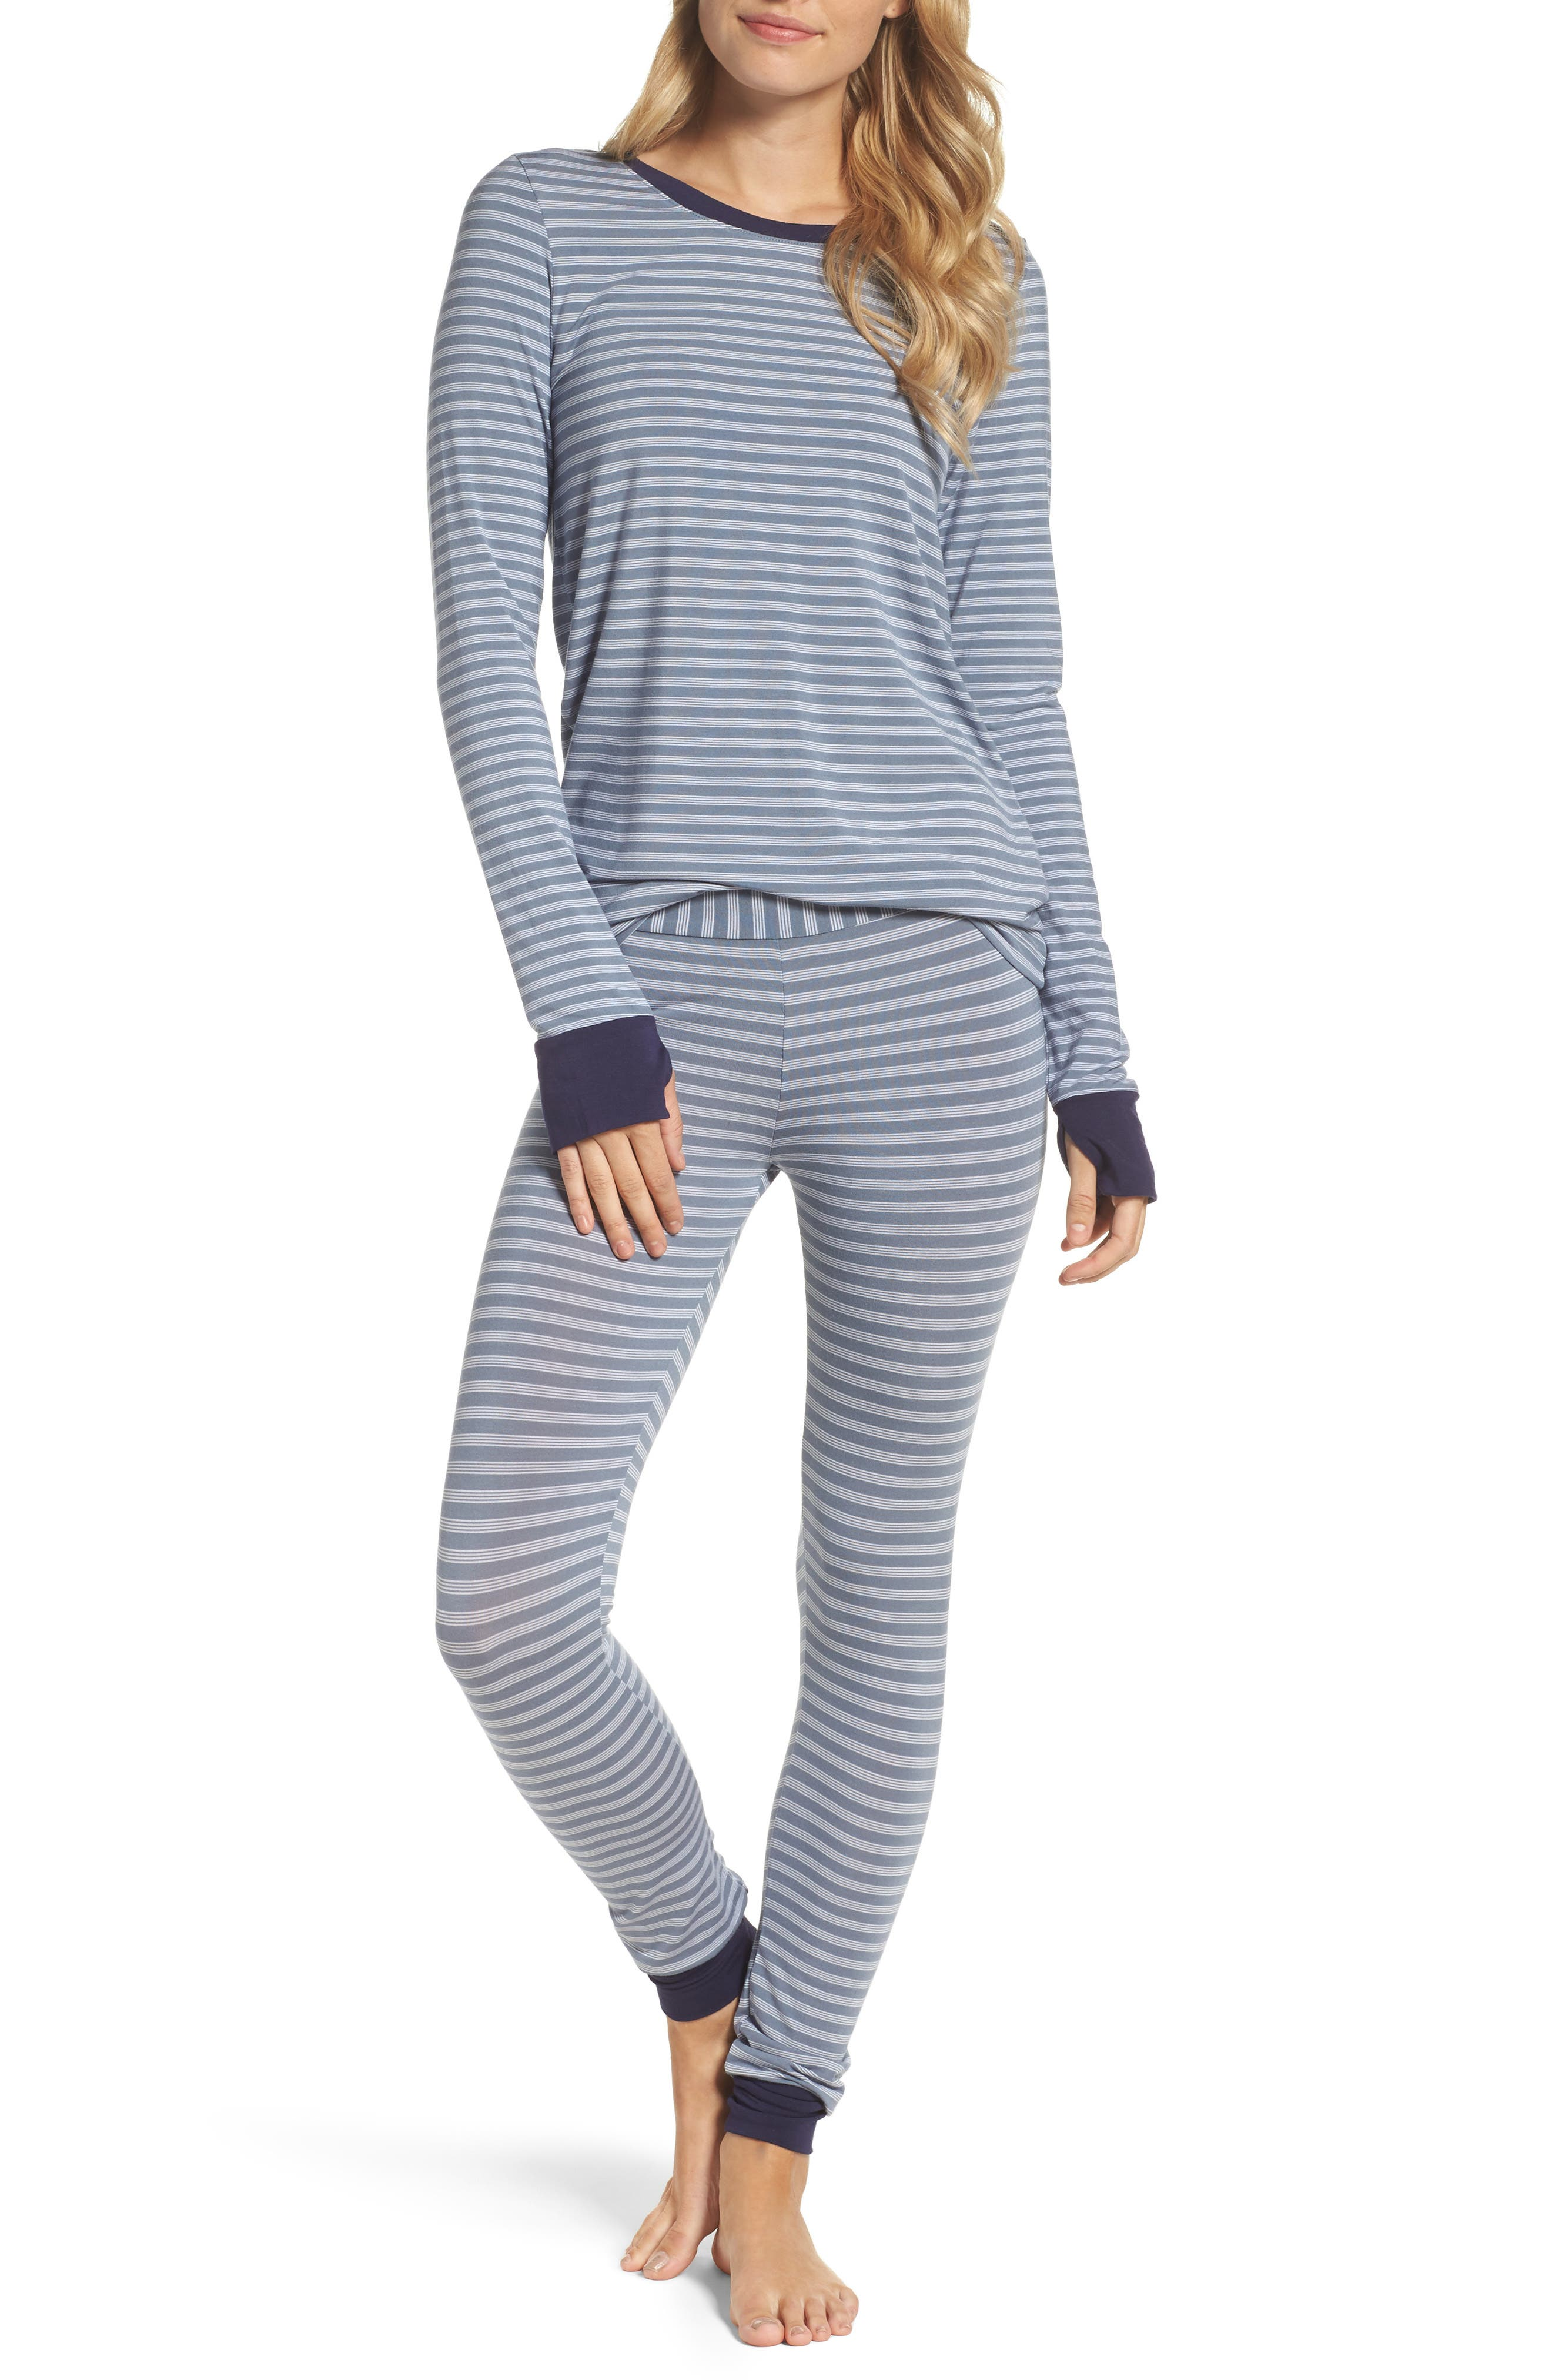 DKNY Fitted Pajamas